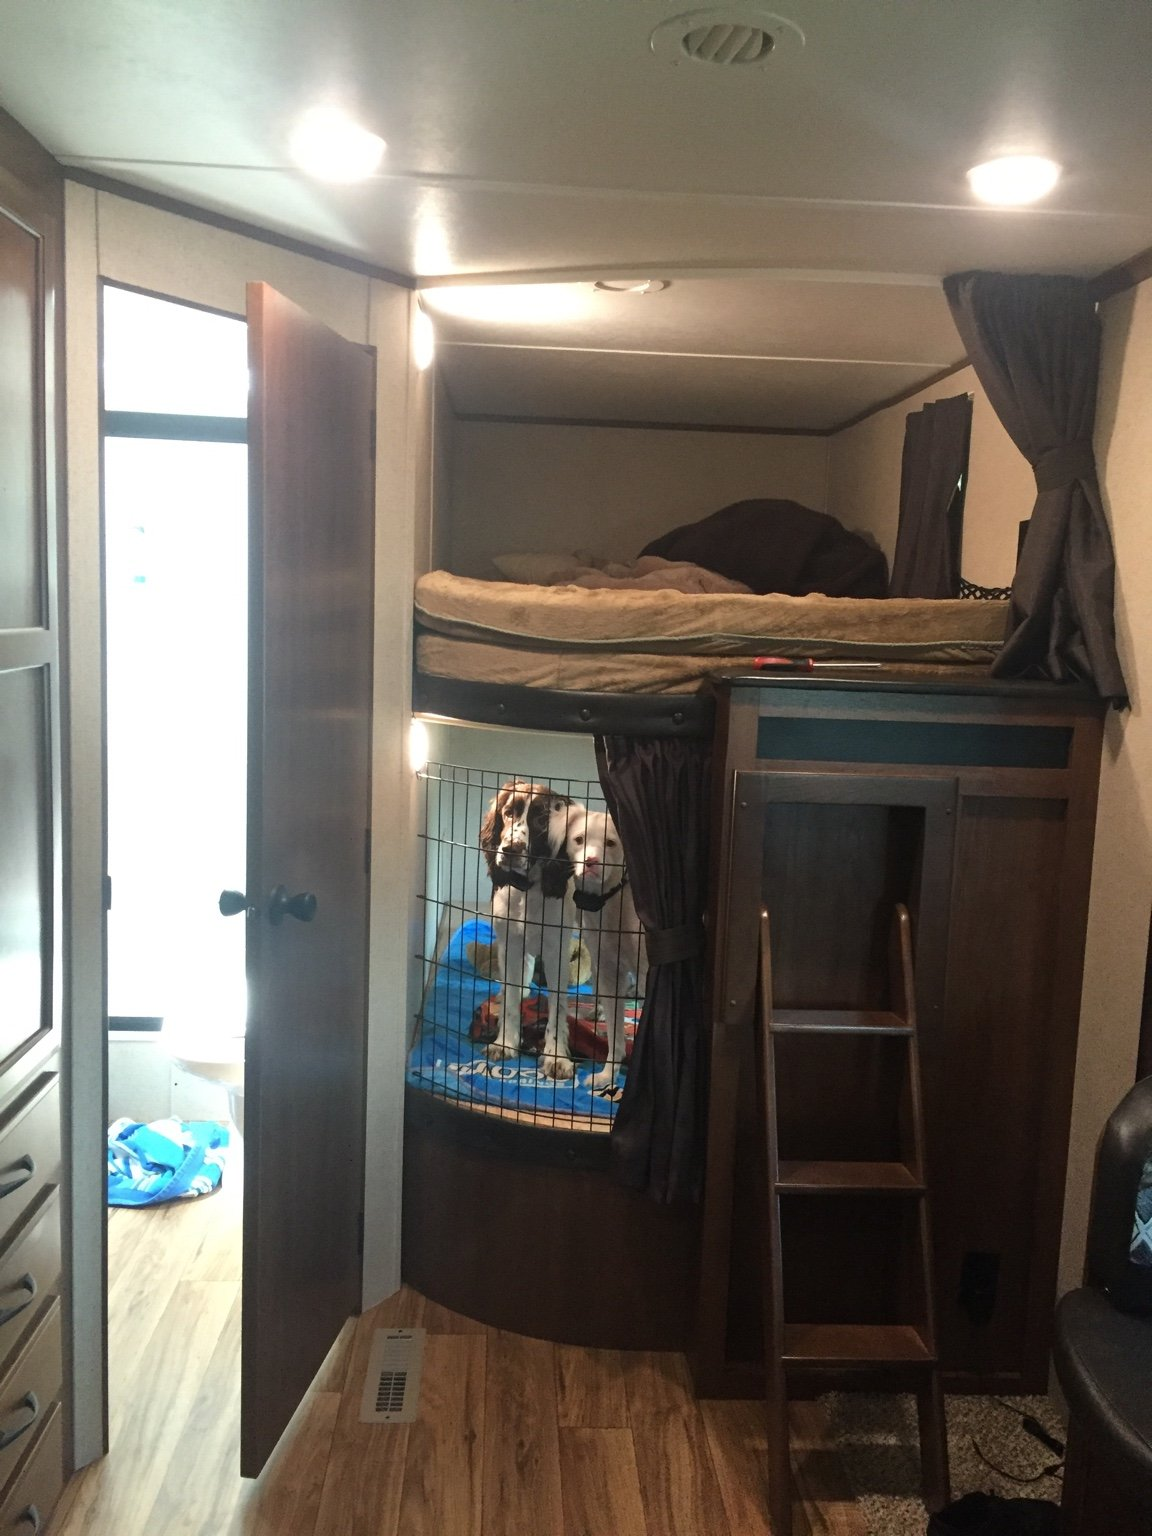 Lower Bunk Dog Crate Mod Jayco Rv Owners Forum